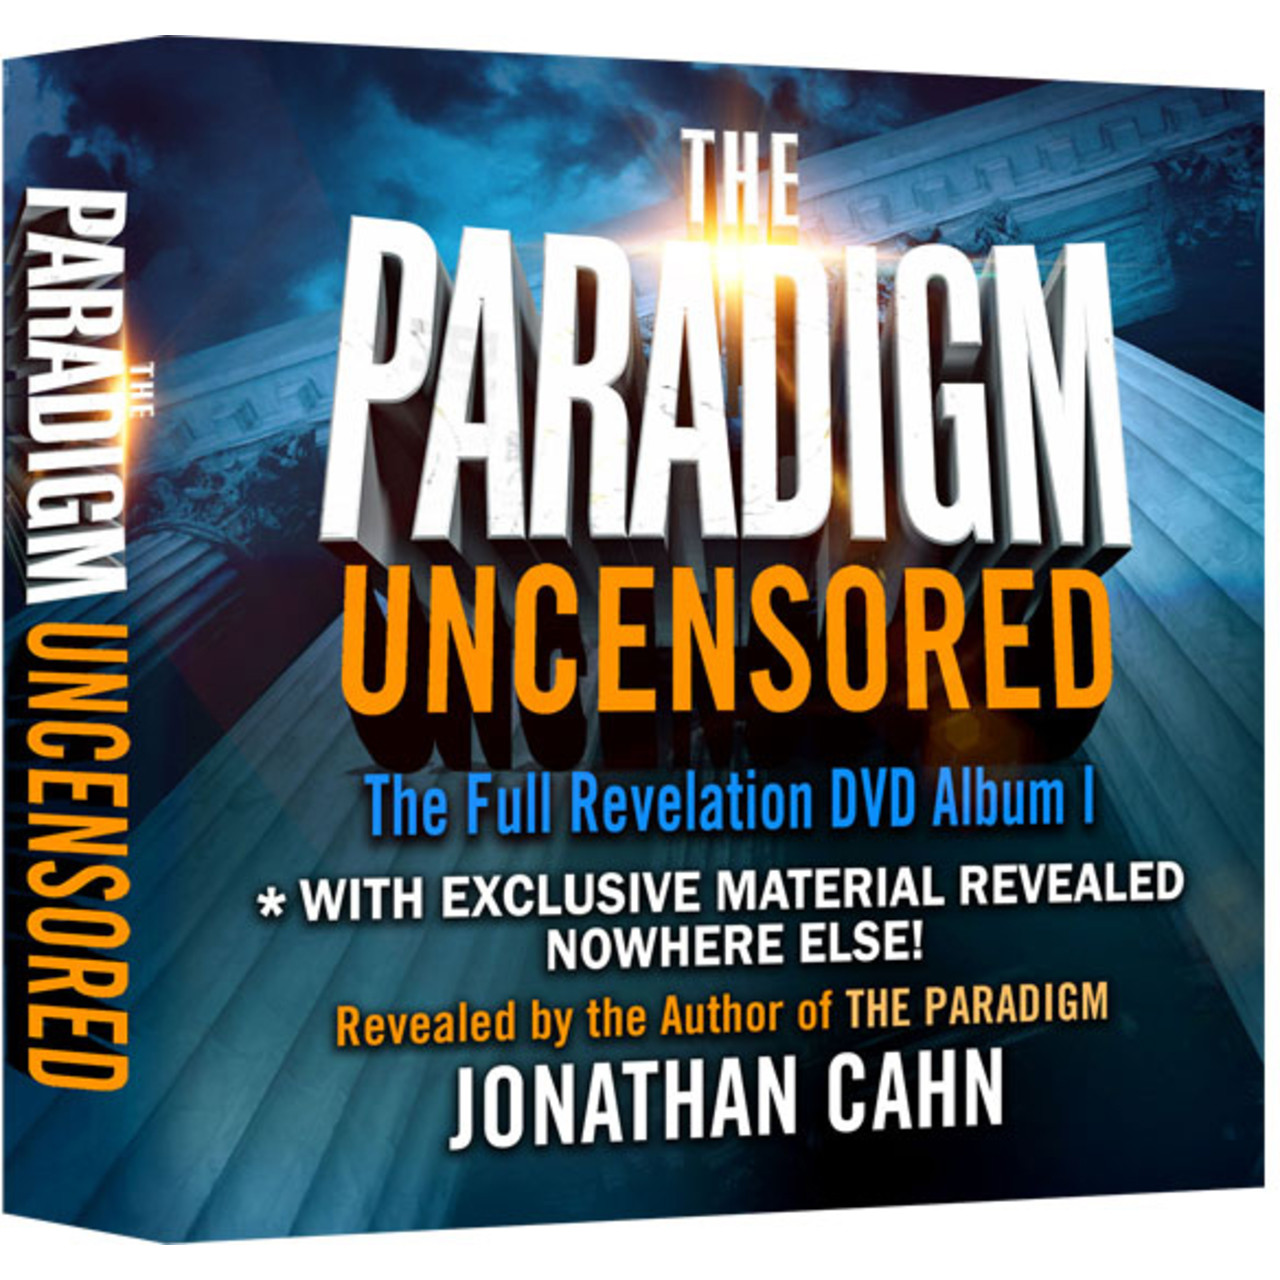 The paradigm uncensored part 1 4 dvd set jewish voice the paradigm uncensored part 1 4 dvd set malvernweather Gallery